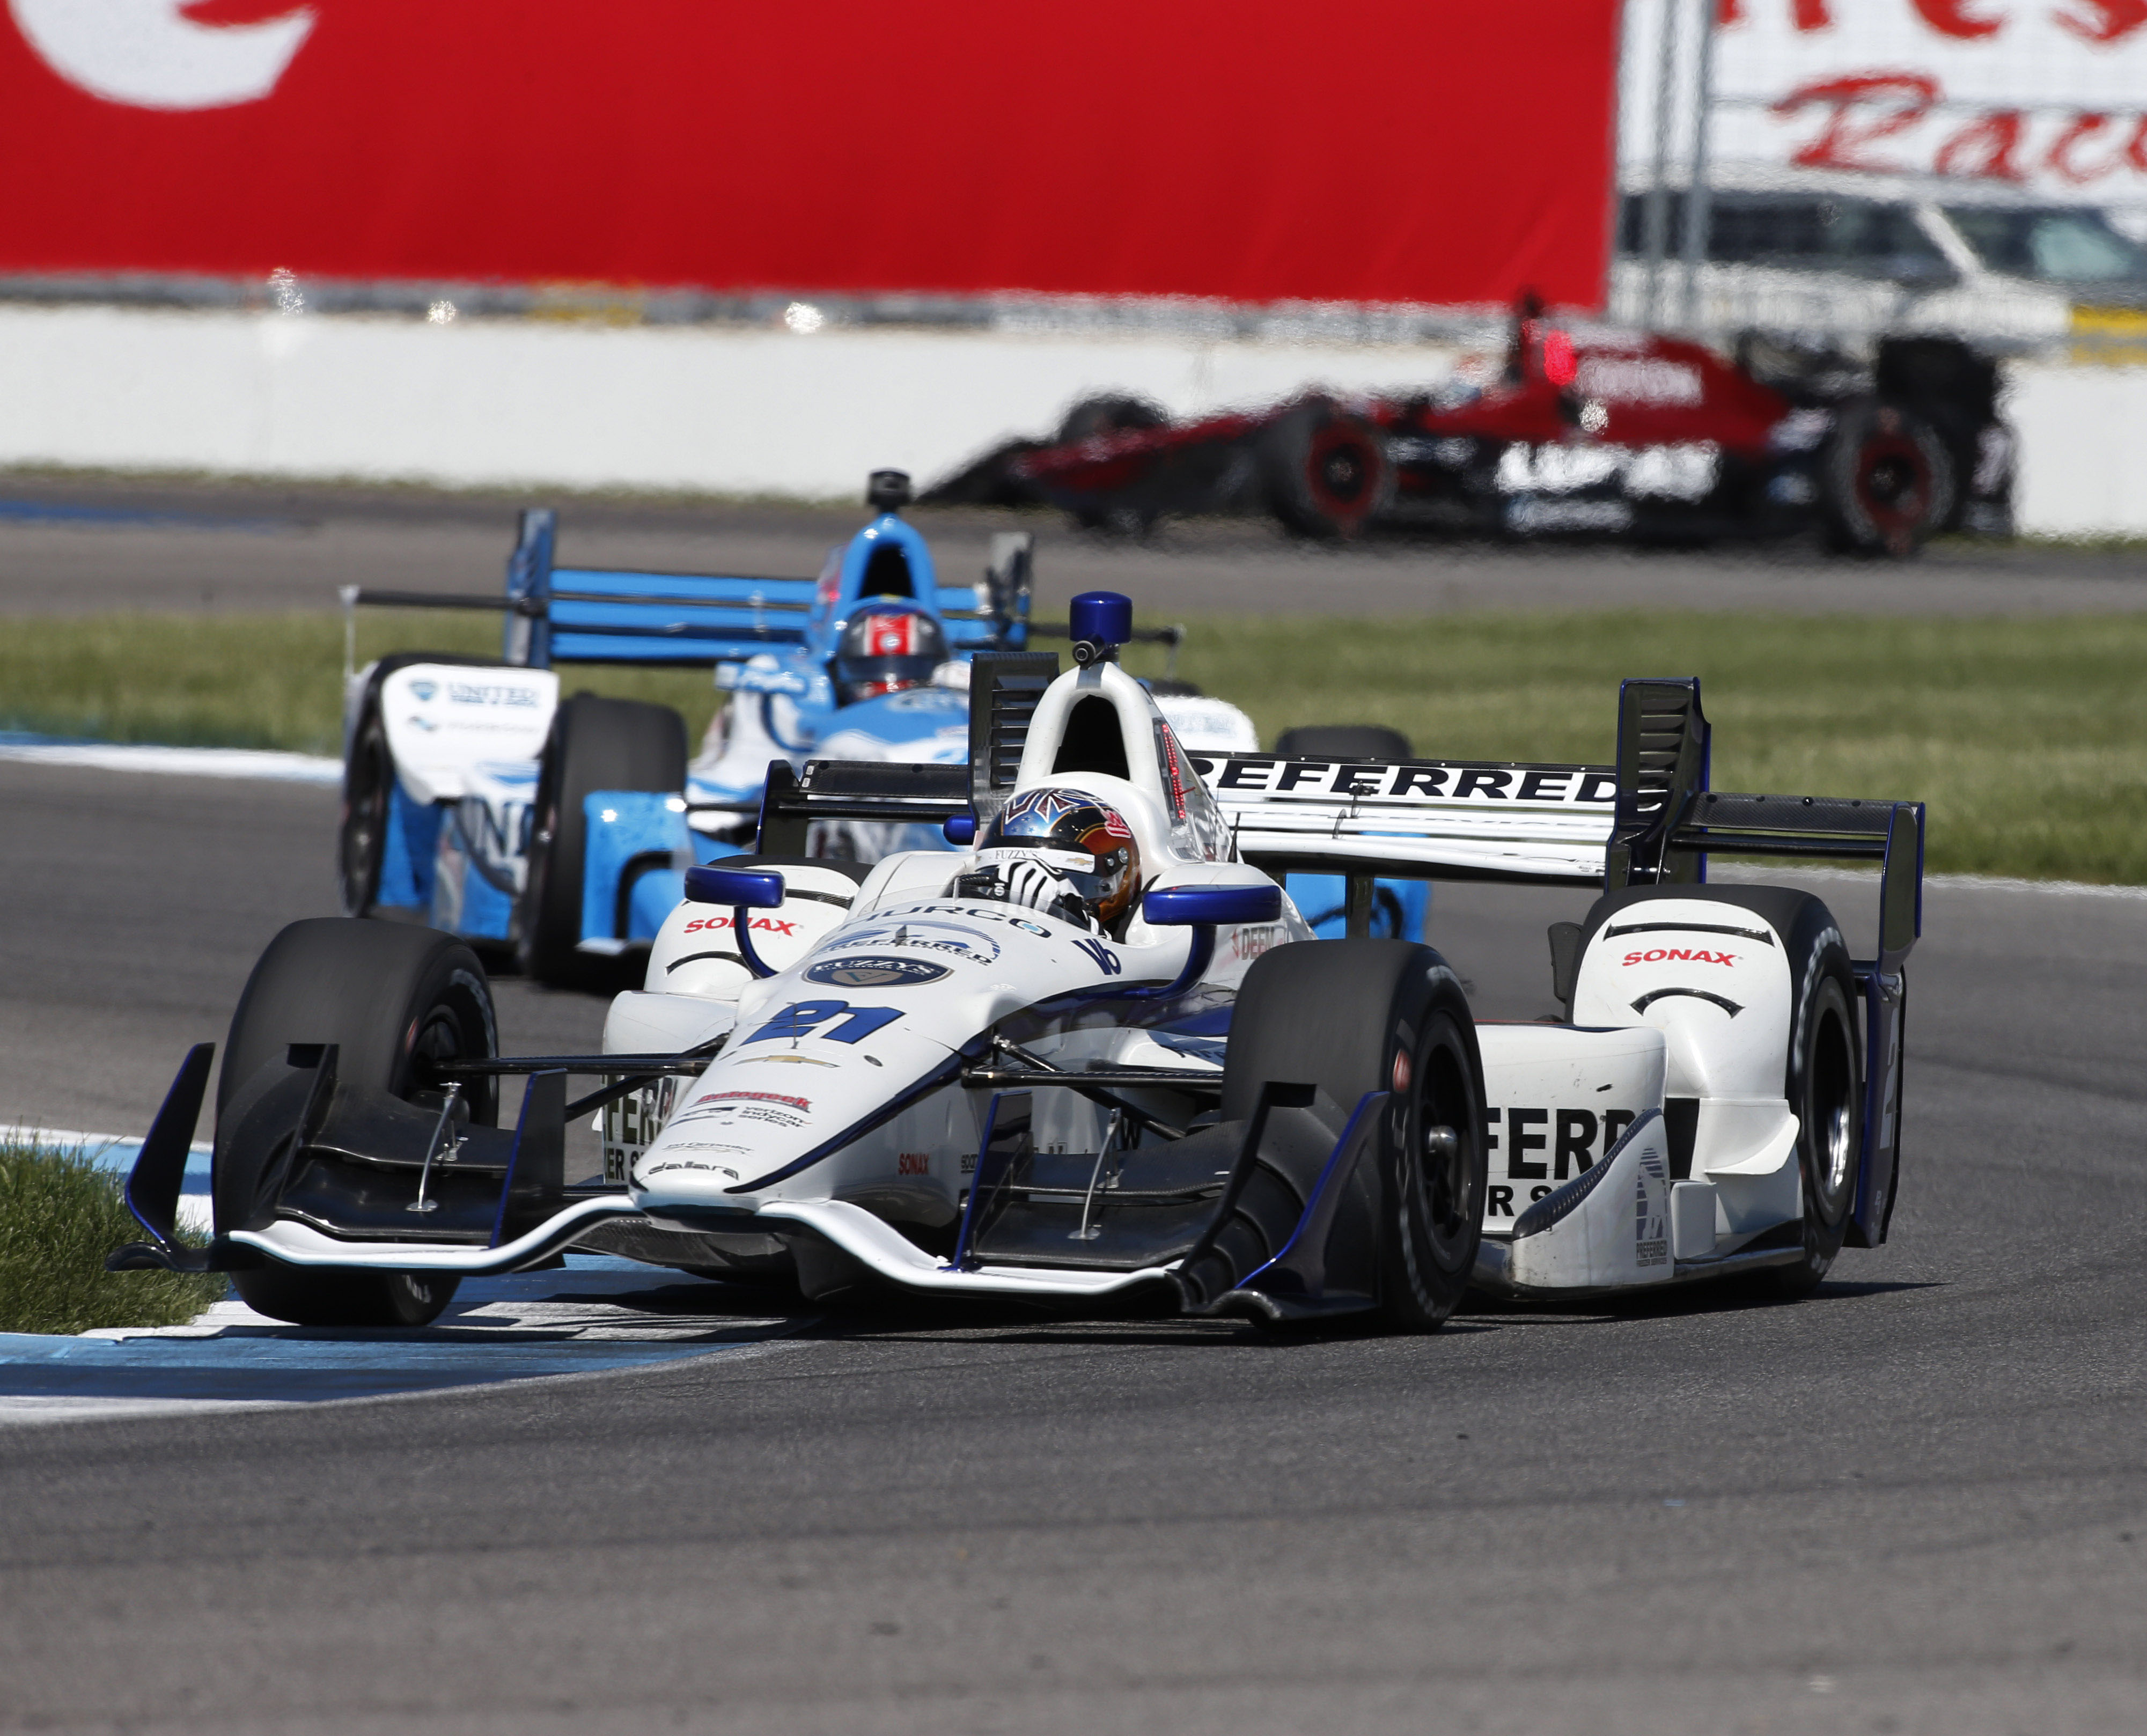 Rahal Earns Pole In Race 1